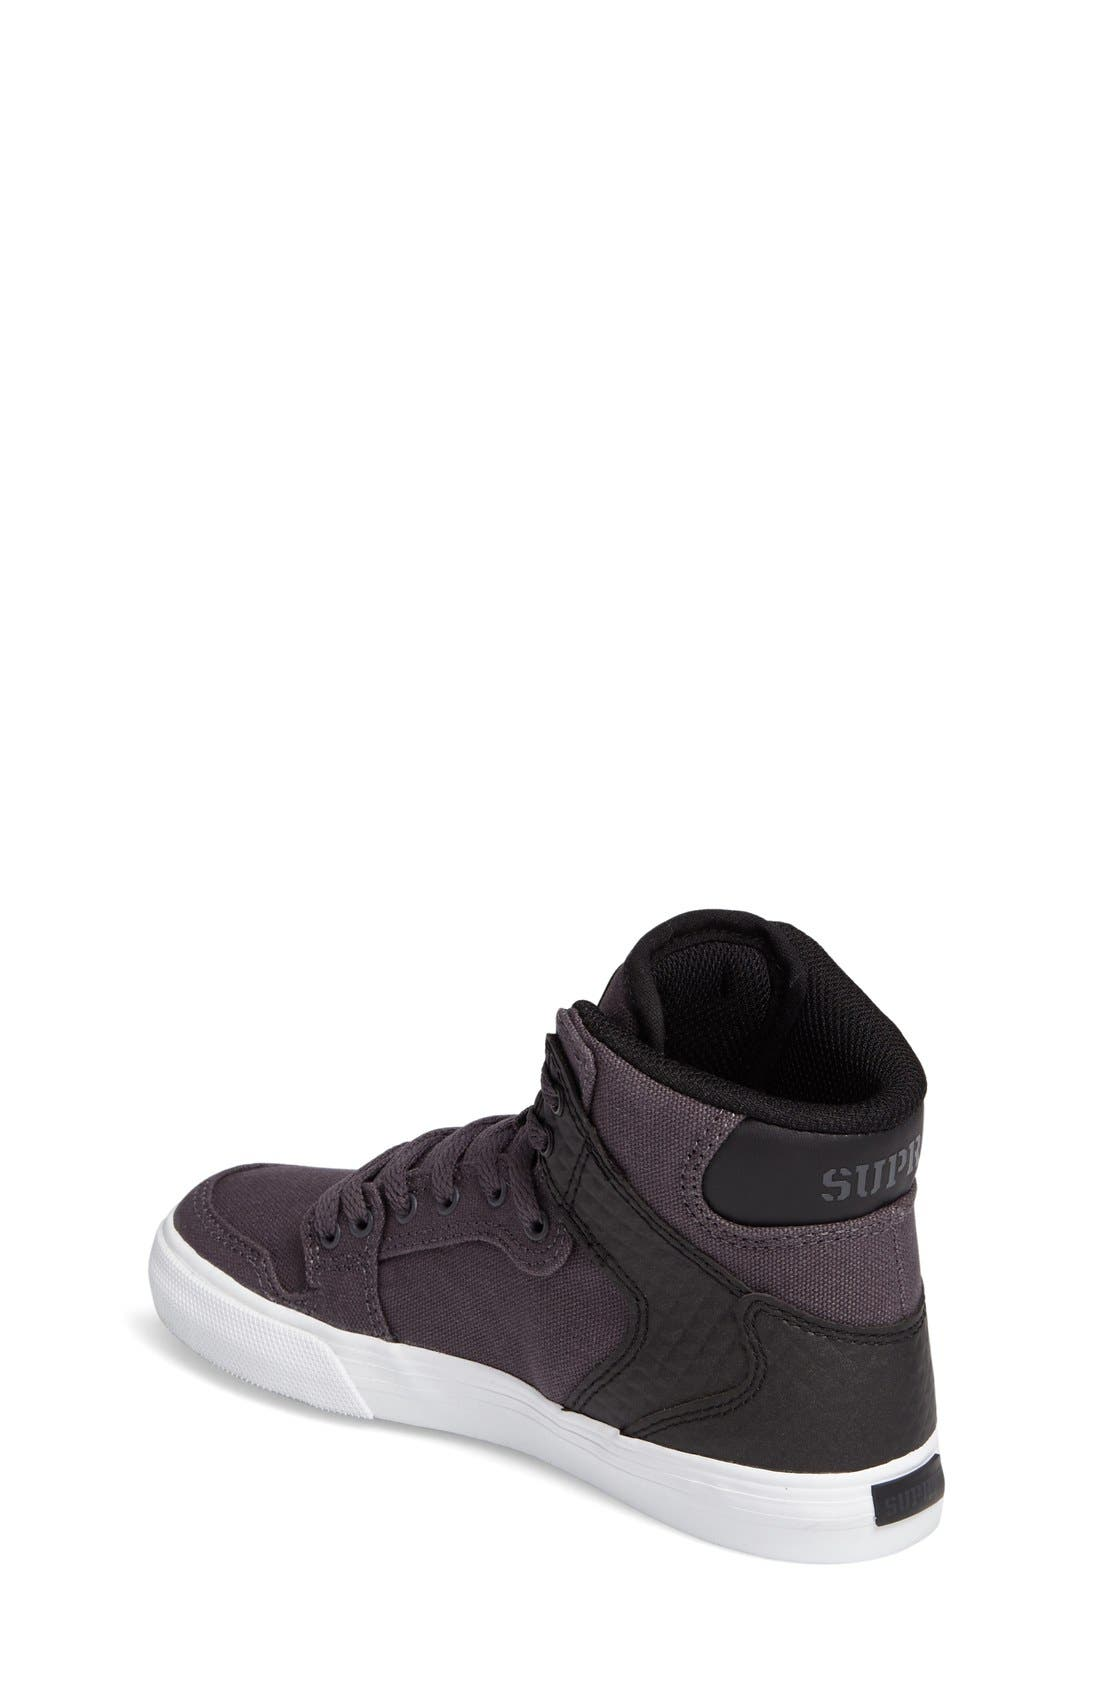 Vaider High Top Sneaker,                             Alternate thumbnail 3, color,                             006